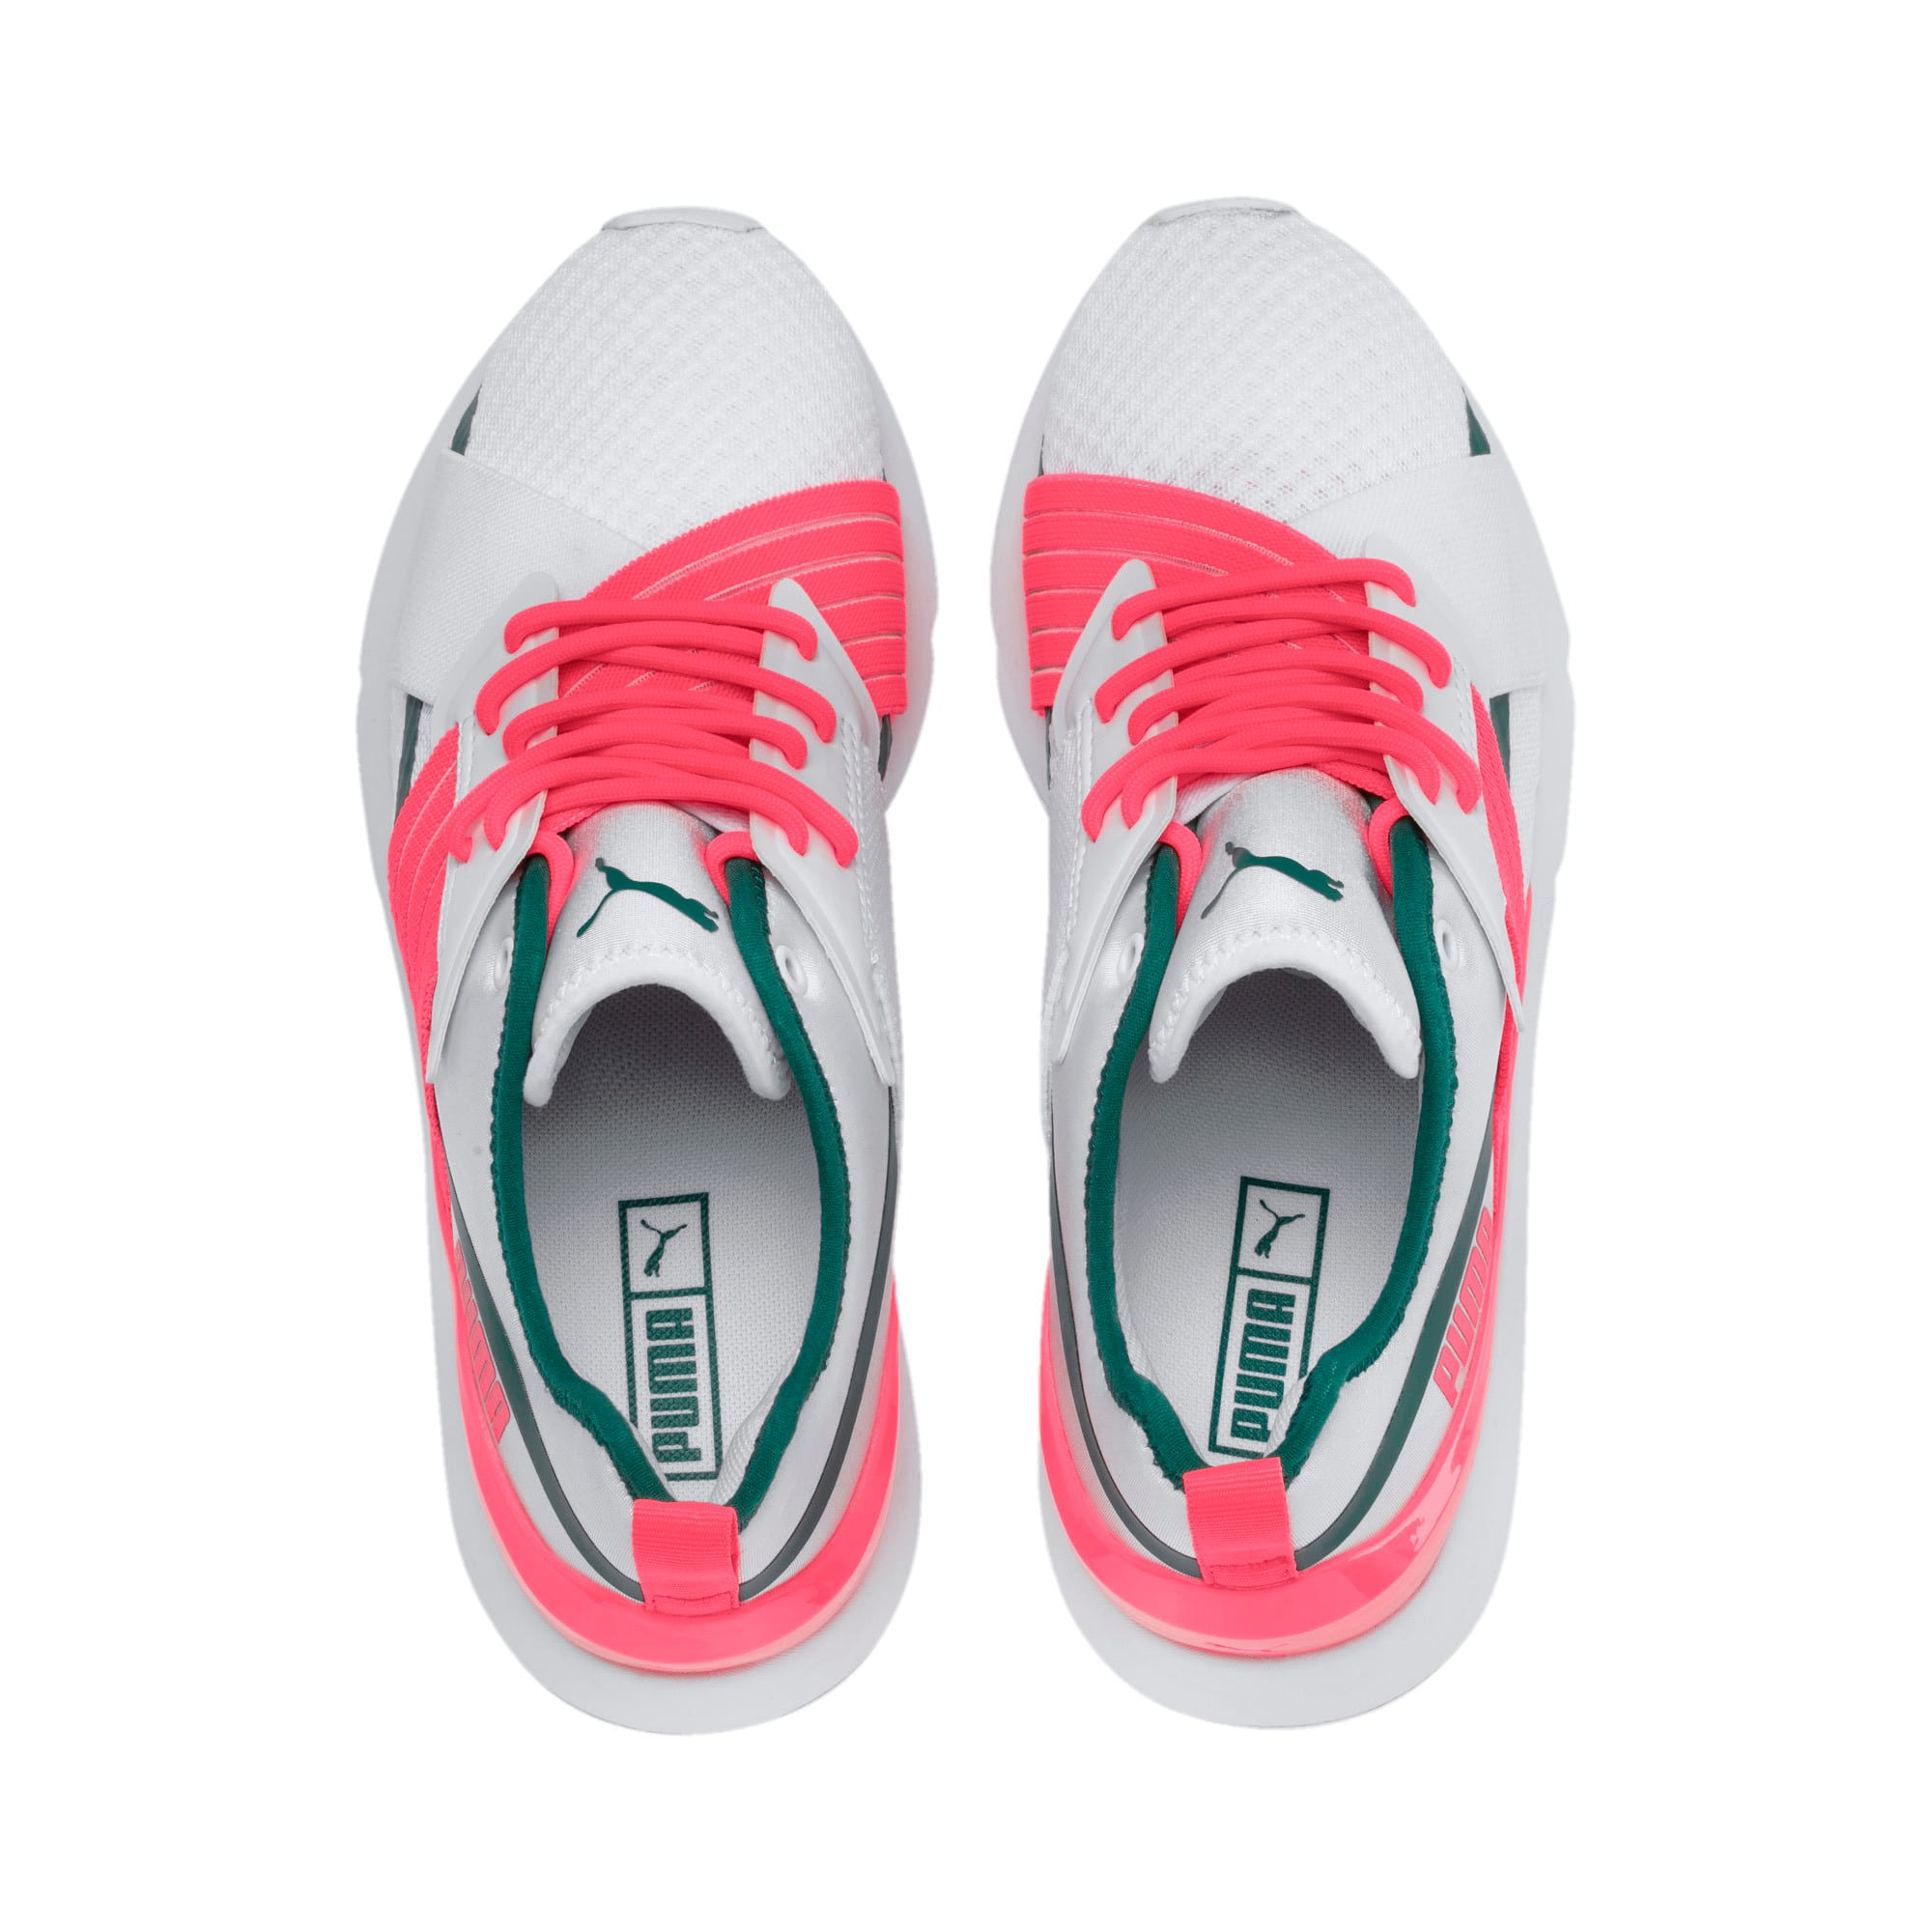 Thumbnail 4 of Muse X-2 Women's Trainers, Puma White-Pink Alert, medium-IND